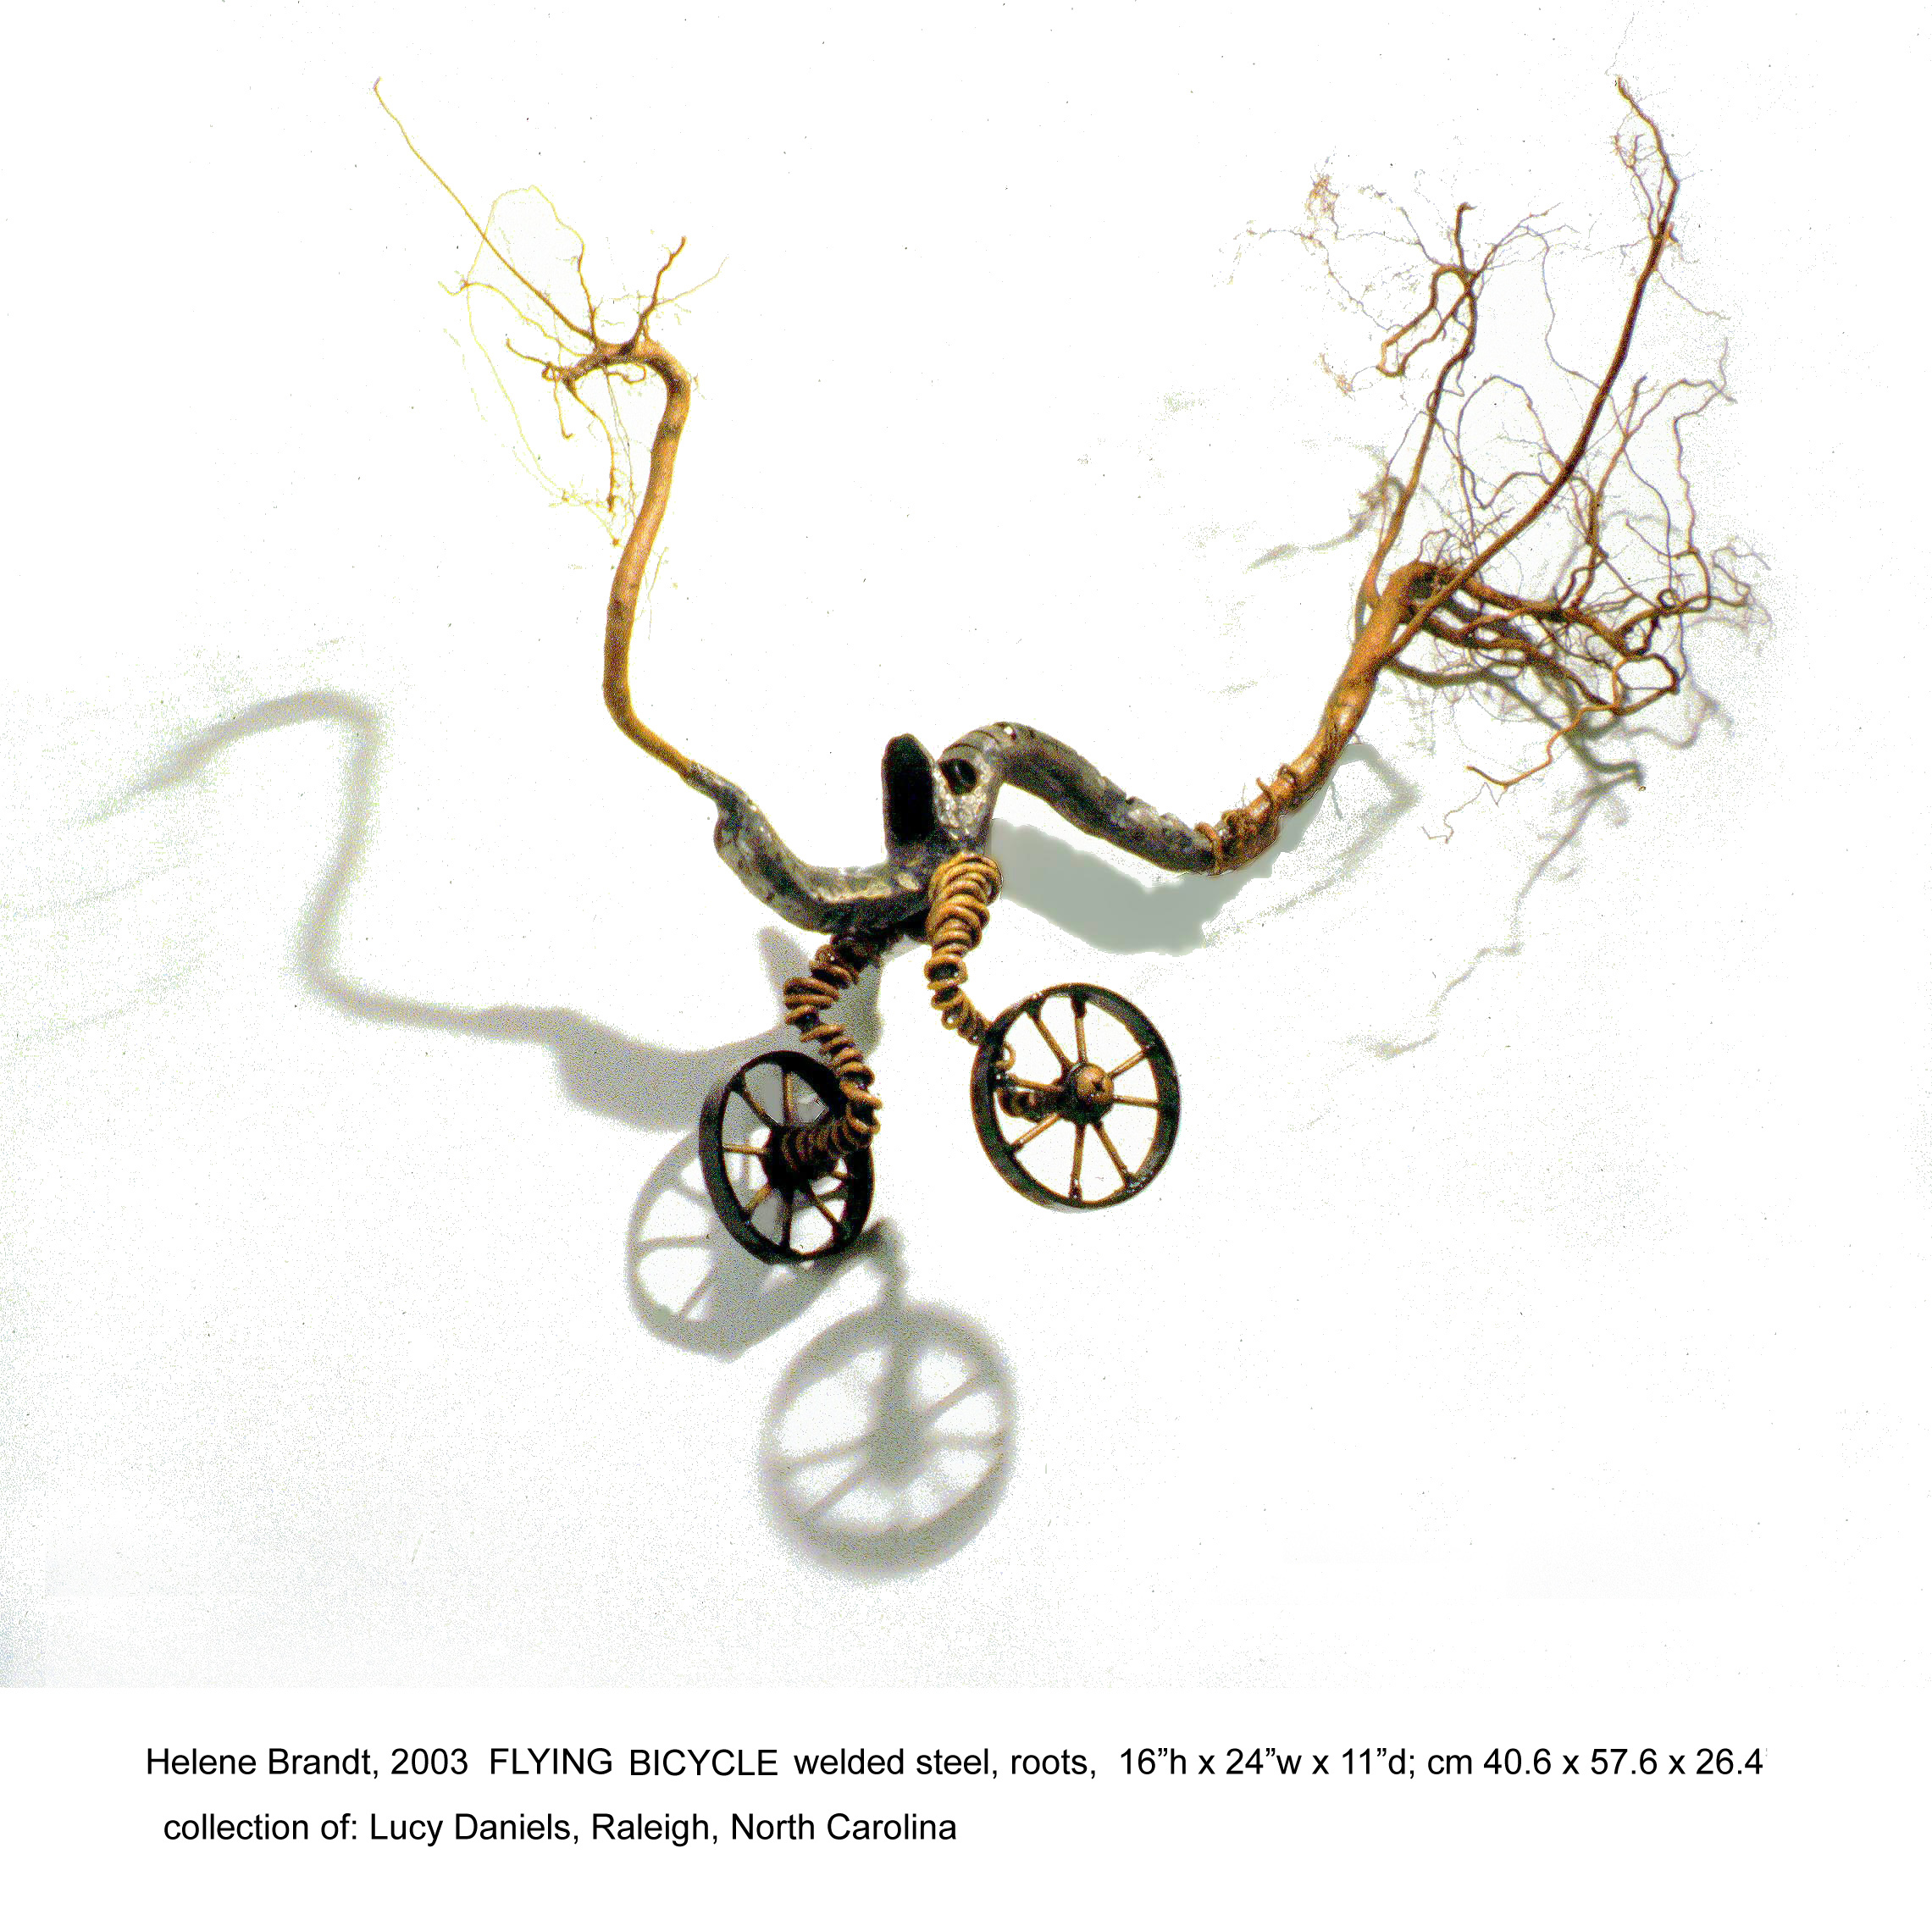 51-FlyingBicycle.png